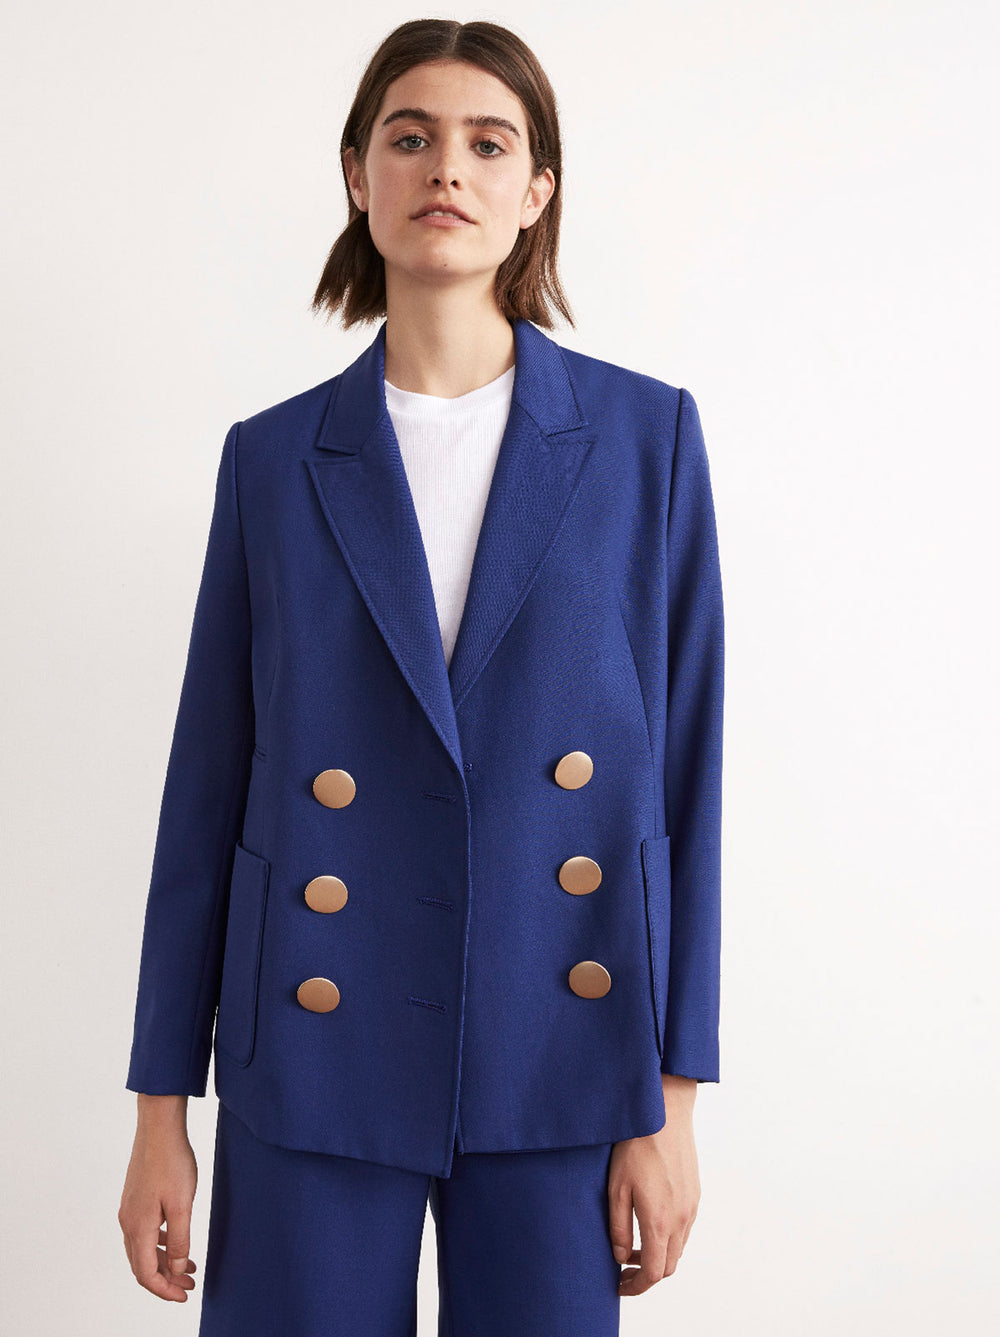 Tilly Blue Tailored Statement Button Blazer by KITRI Studio